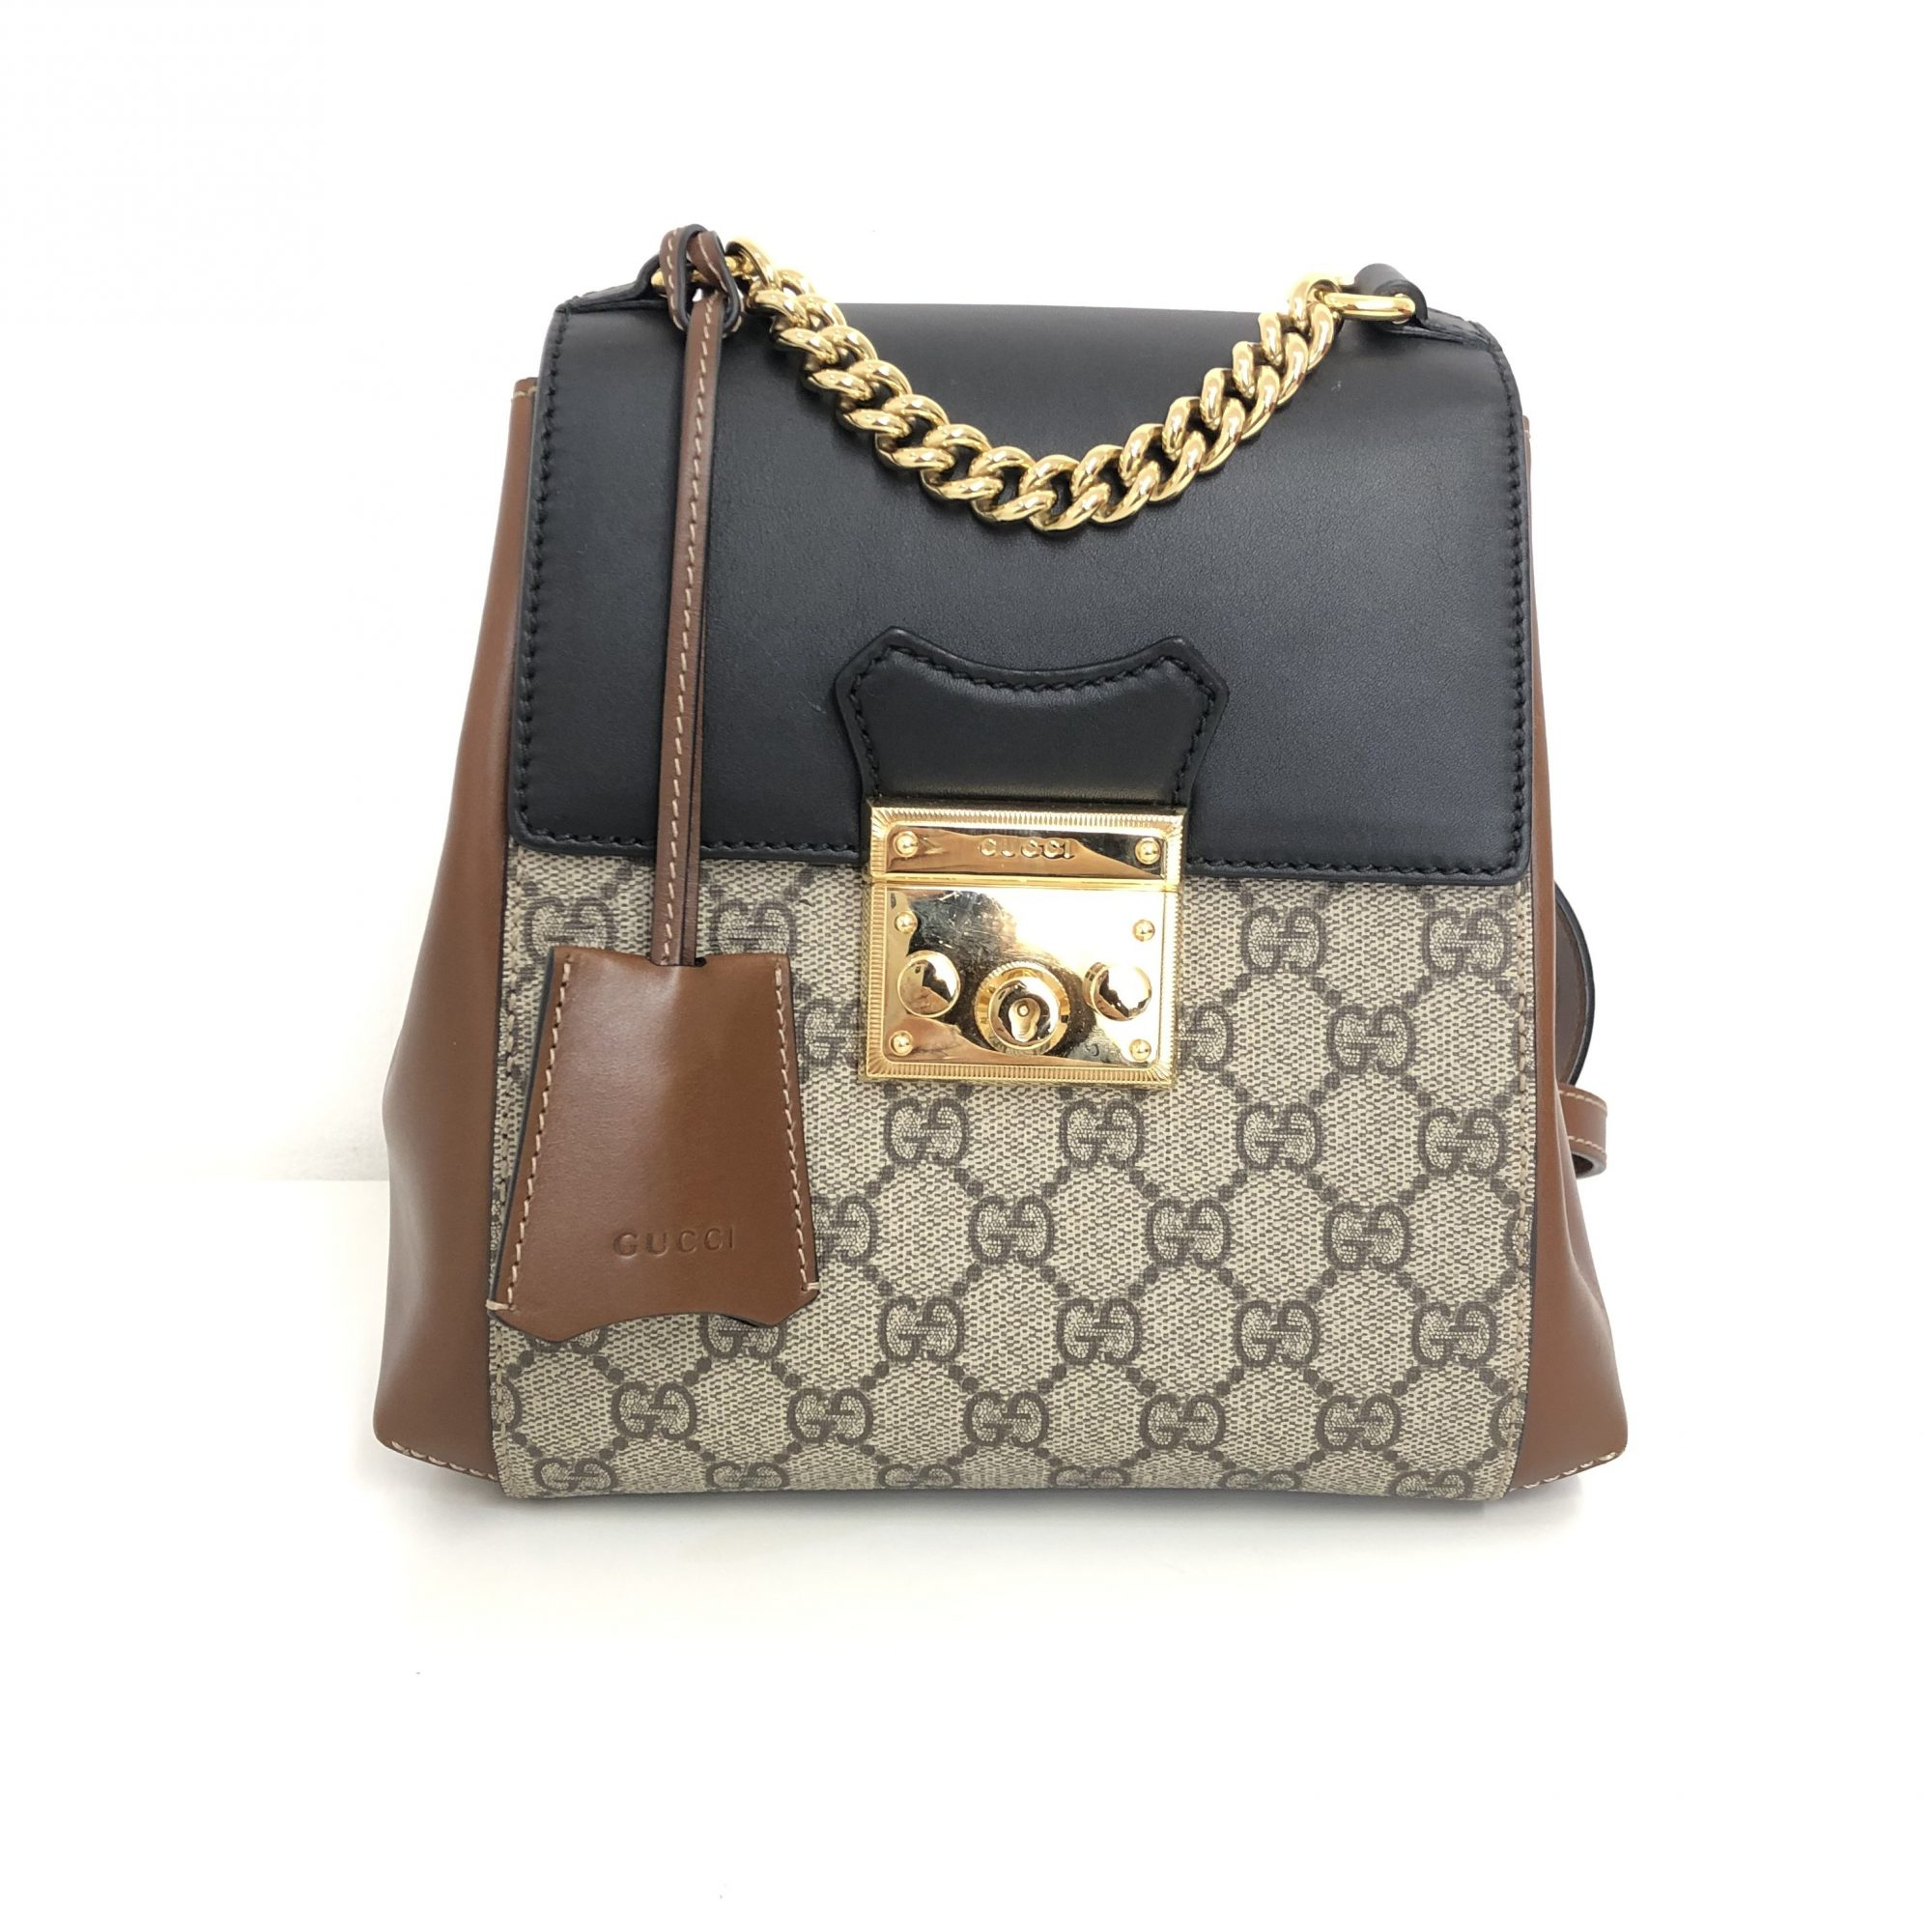 ab6a10a98048cb My-Luxury-Bargain-Gucci-Beige-GG-Canvas-Leather-Padlock-Backpack -1-2000x2000.jpg